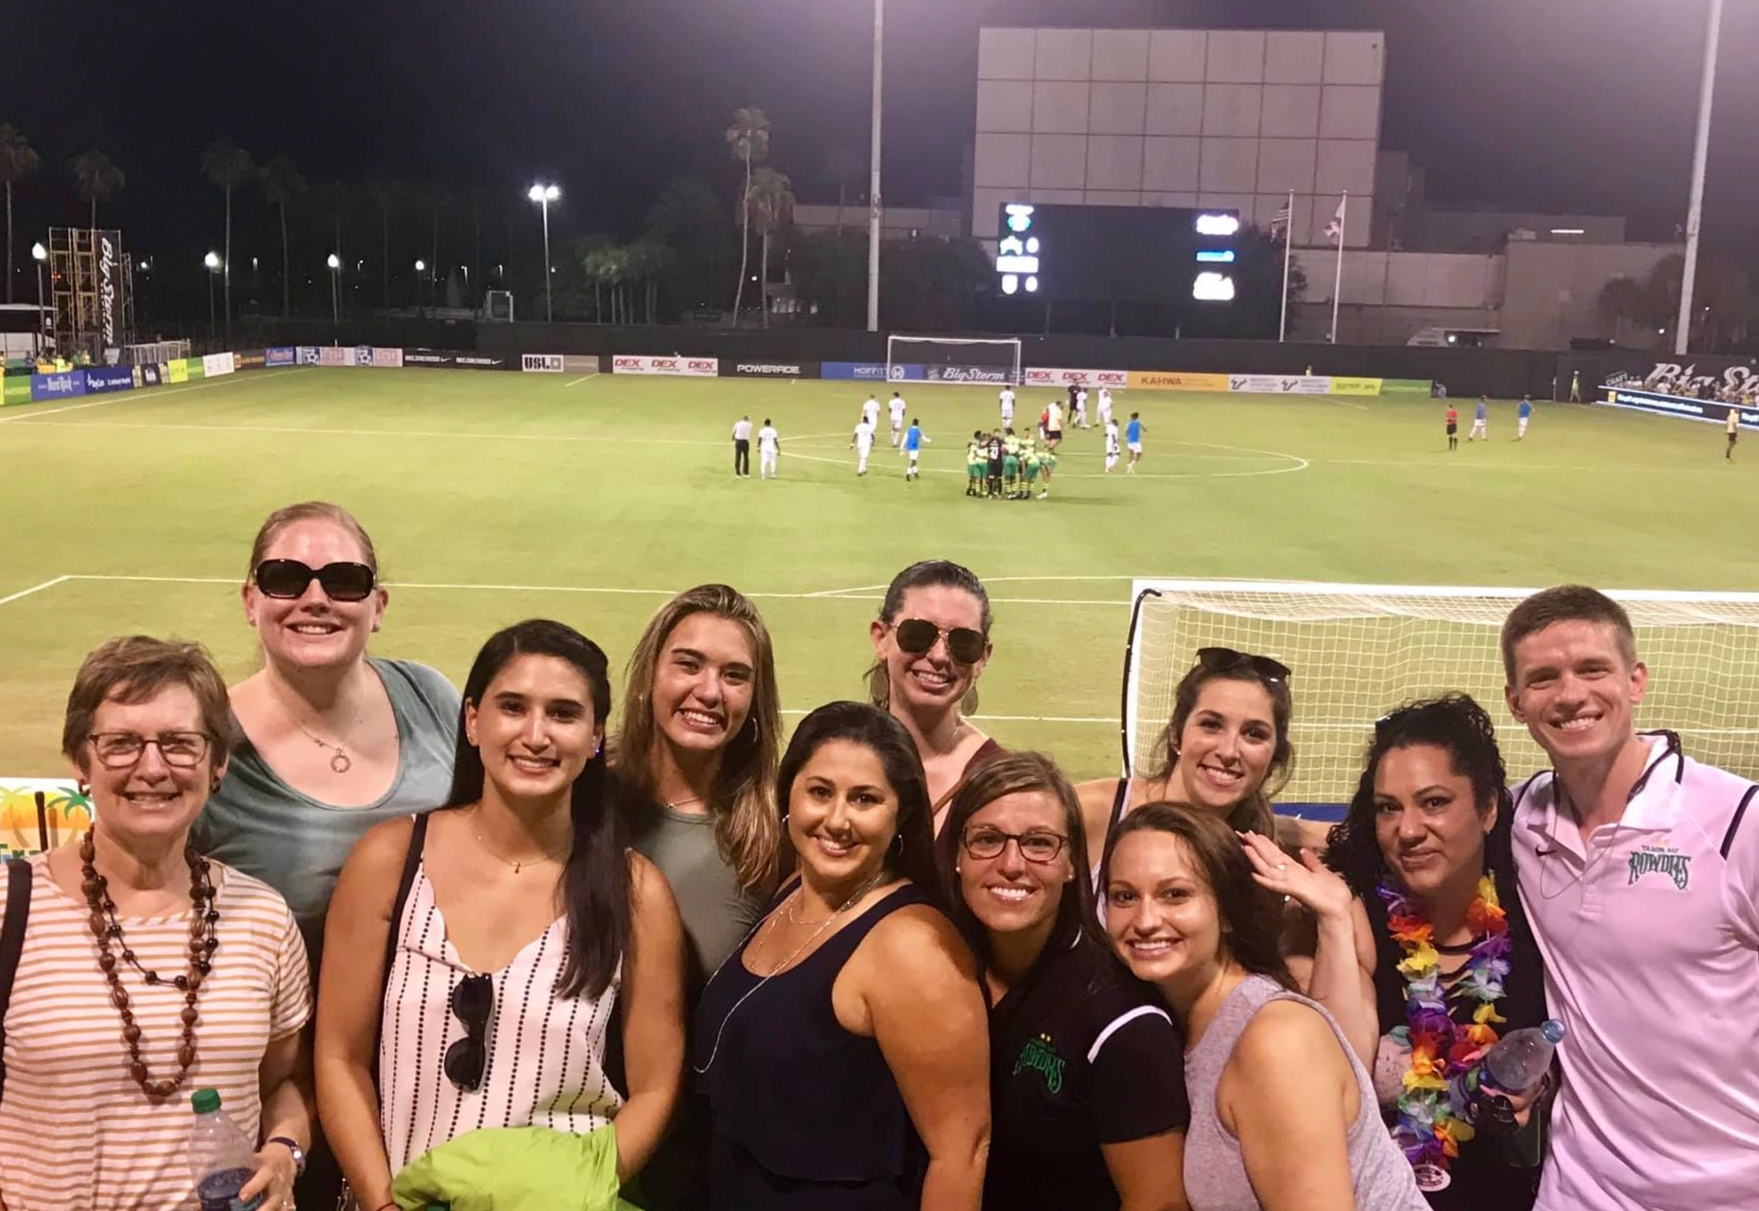 The team at a Rowdies game in August!